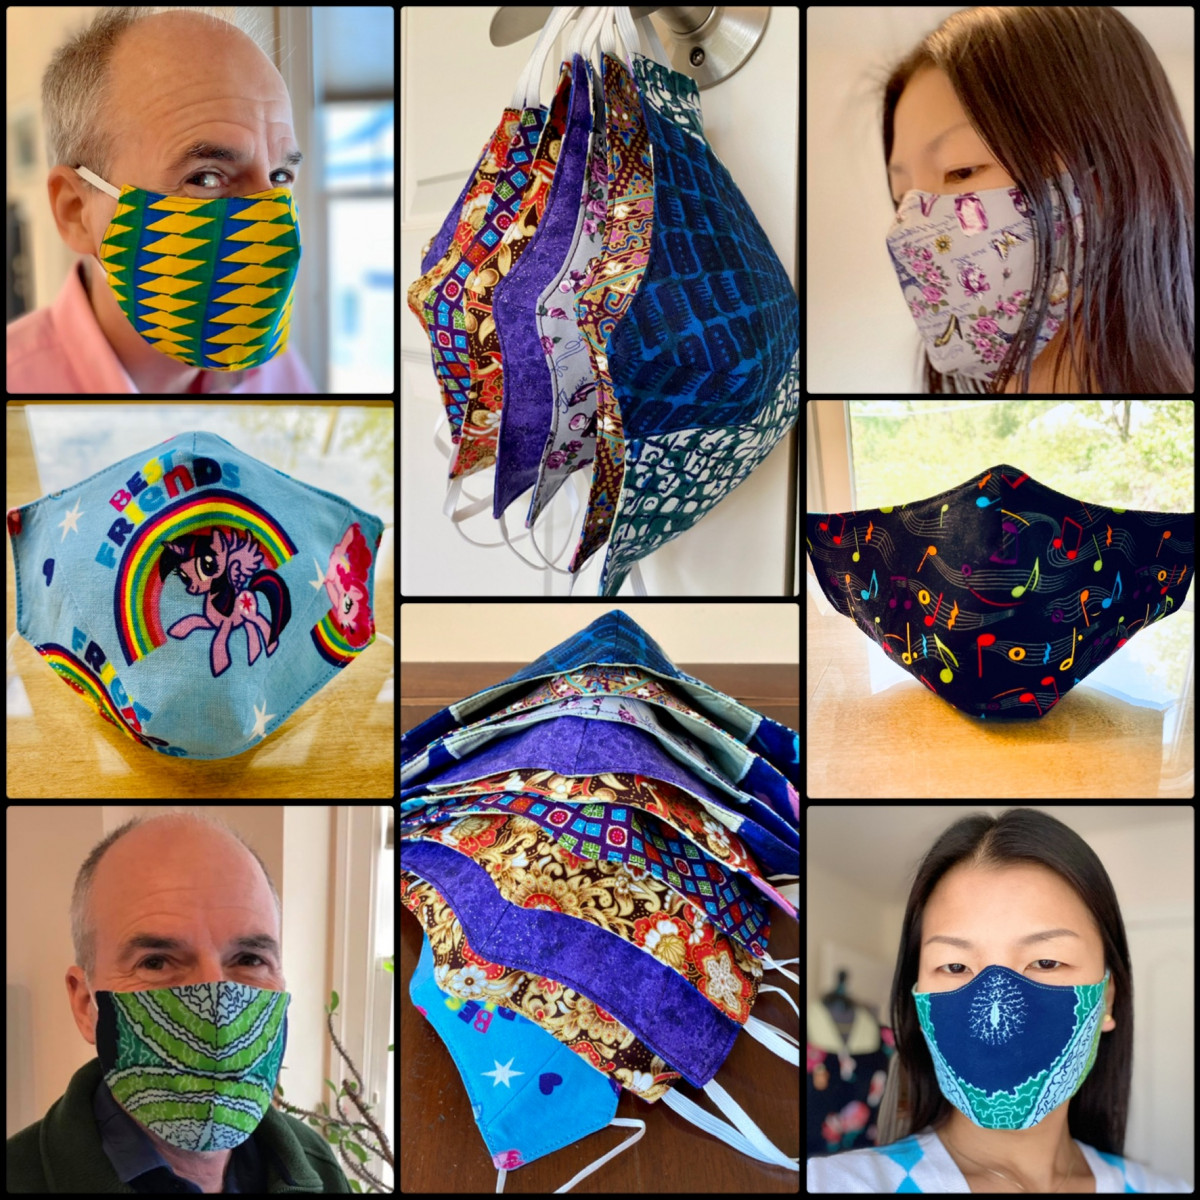 collage of a variety of colorful masks